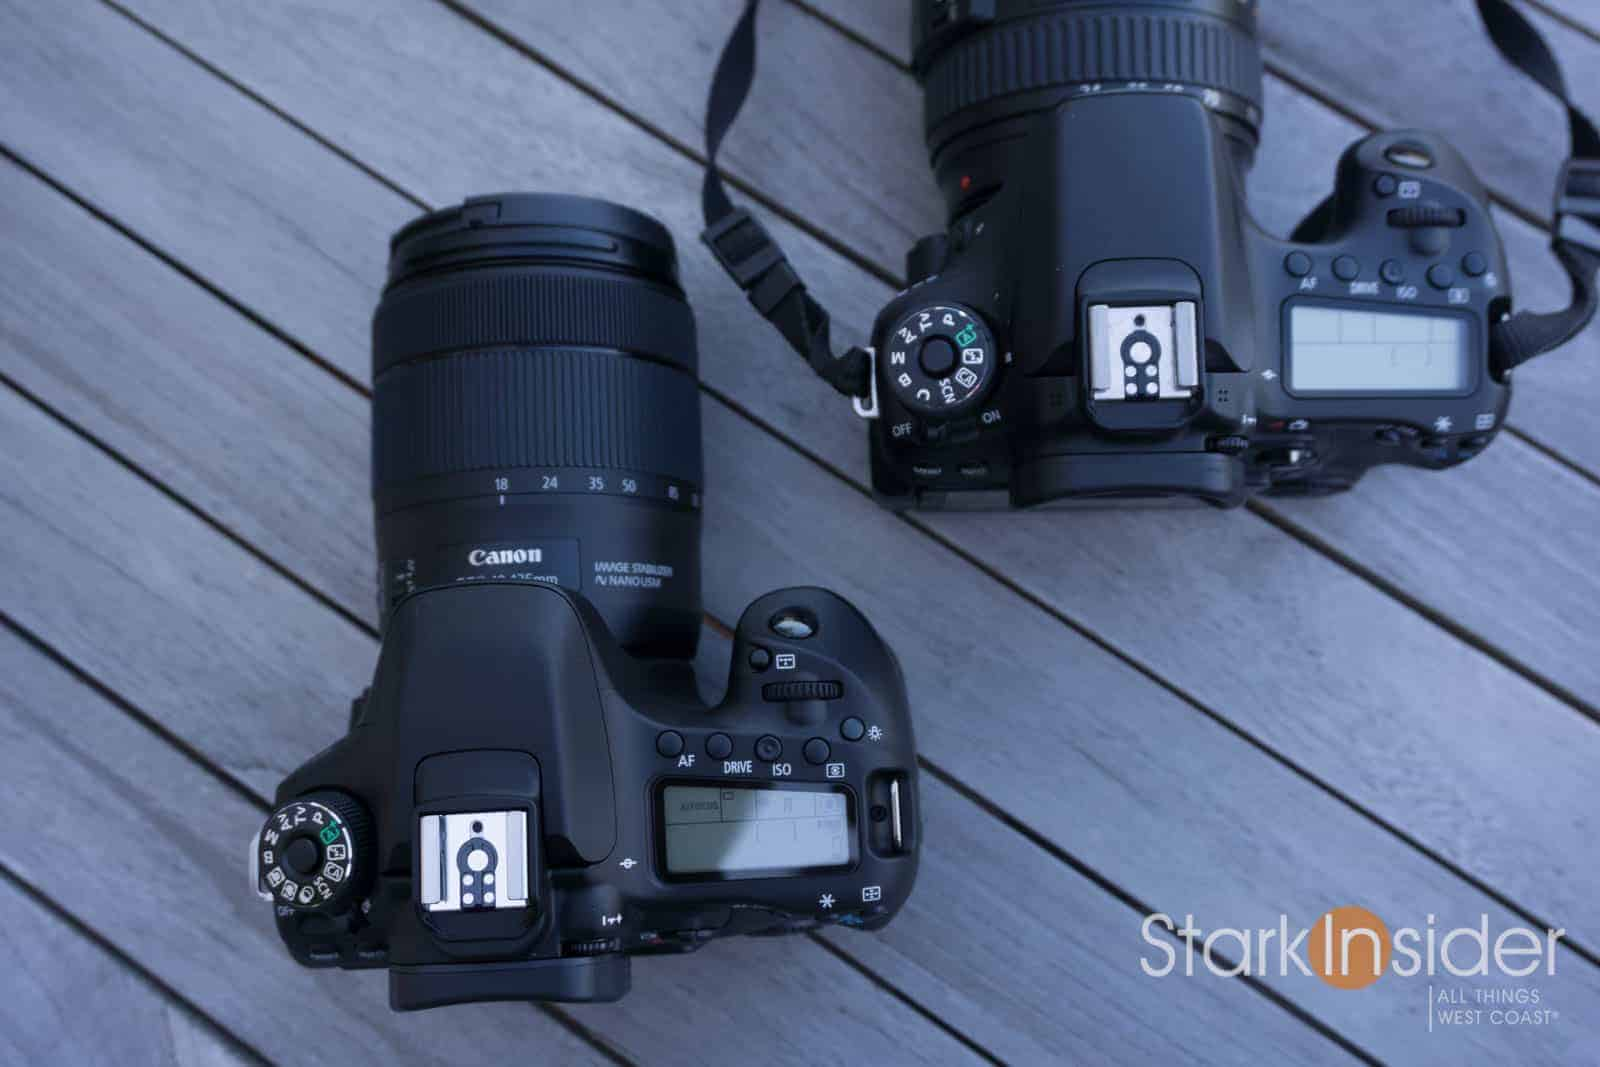 Top 5 Best DSLR and Mirrorless Cameras for Shooting Video Stark